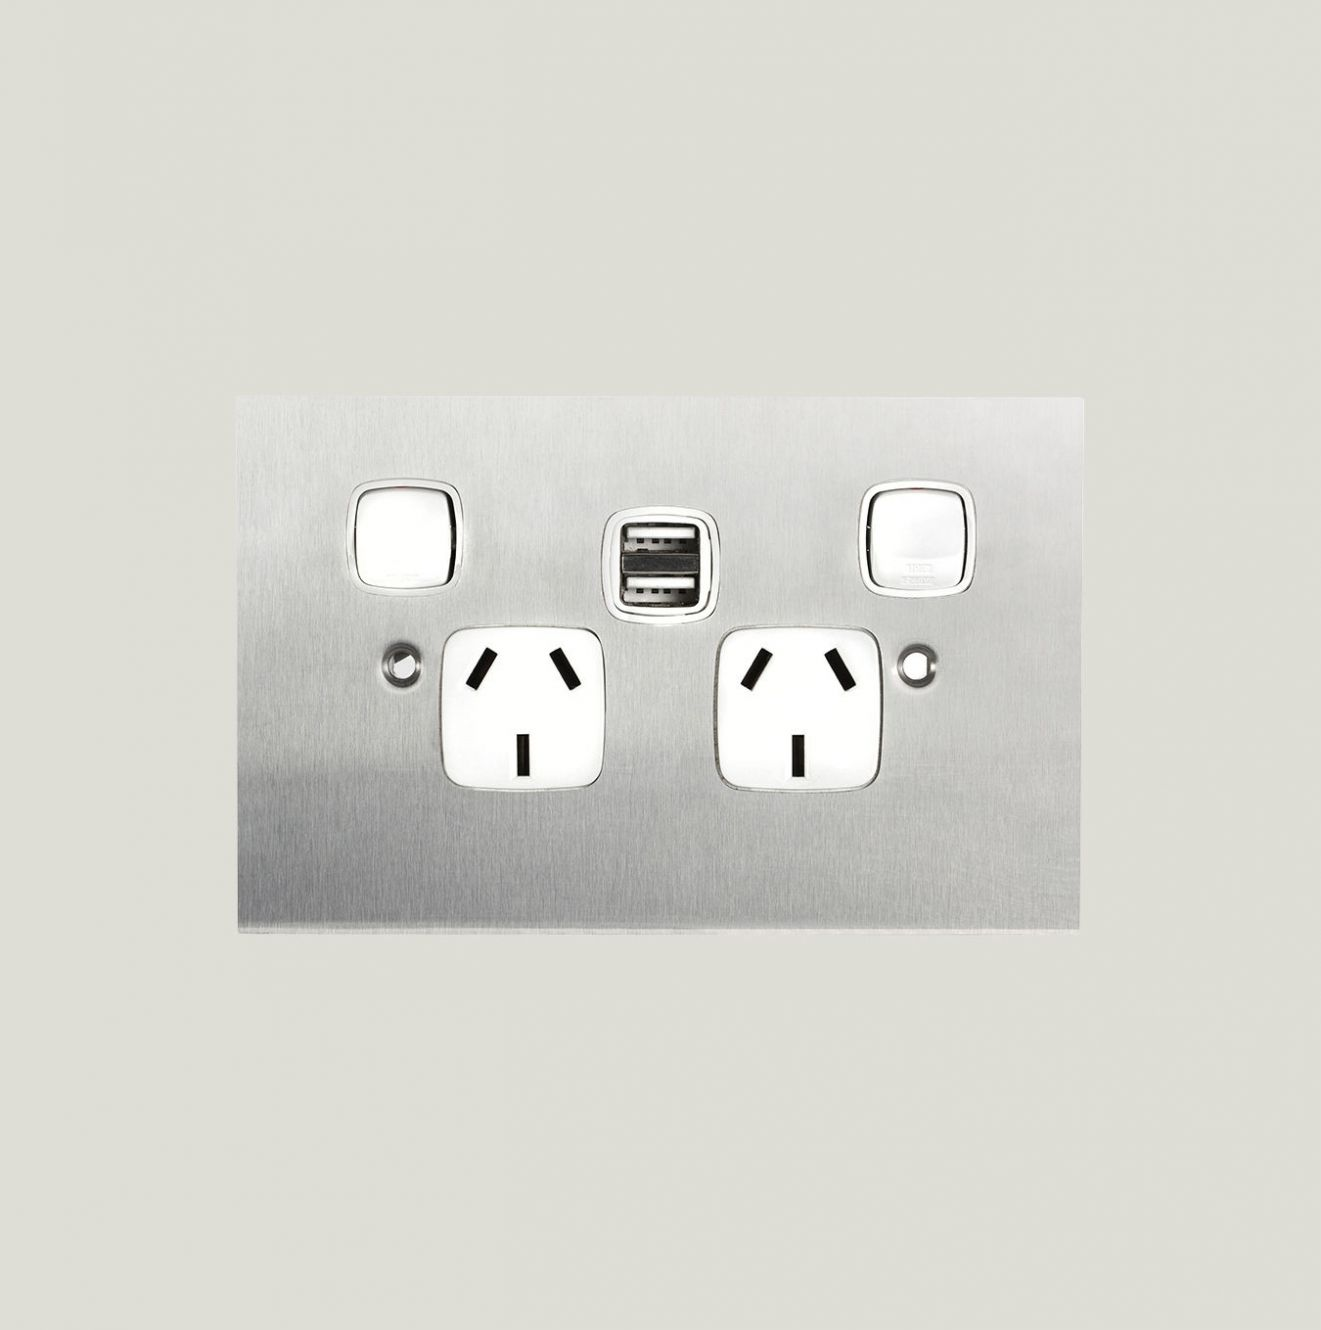 Astounding Switches And Sockets Hpm Nz Wiring 101 Vieworaxxcnl